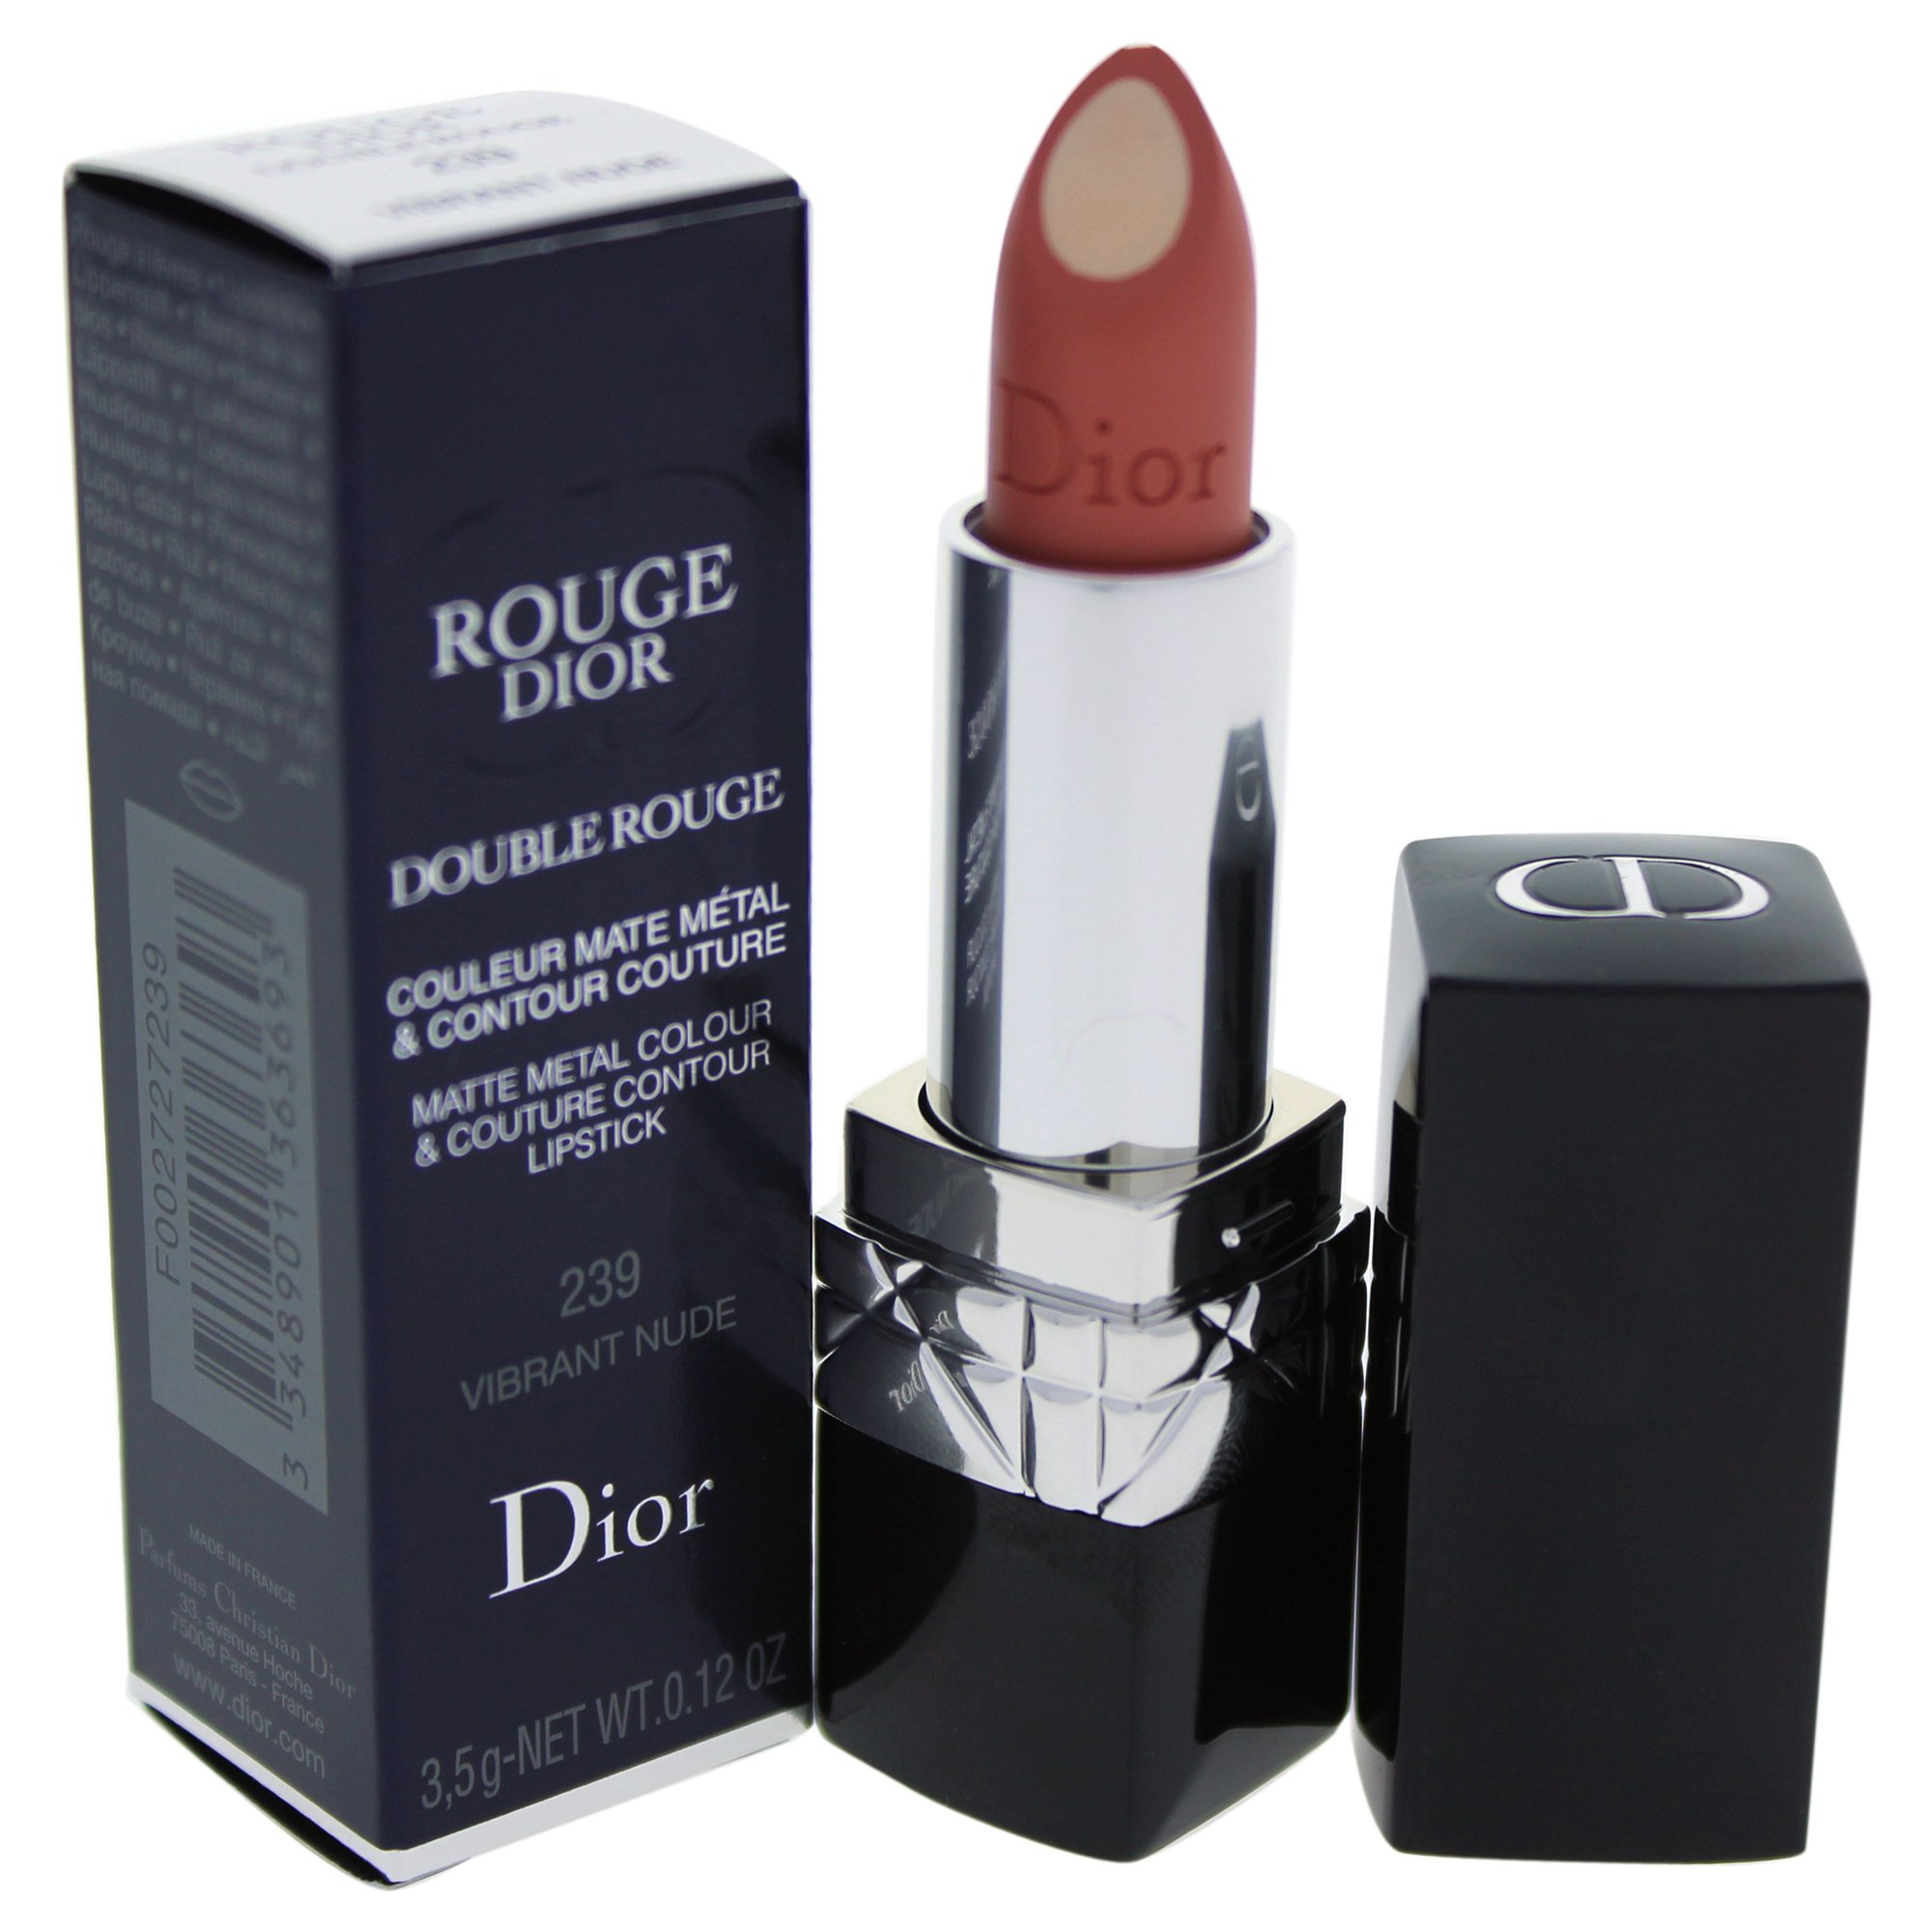 Christian Dior Double Rouge Matte Metal Color Lipstick for Women, Vibrant Nude, 0.12 Ounce